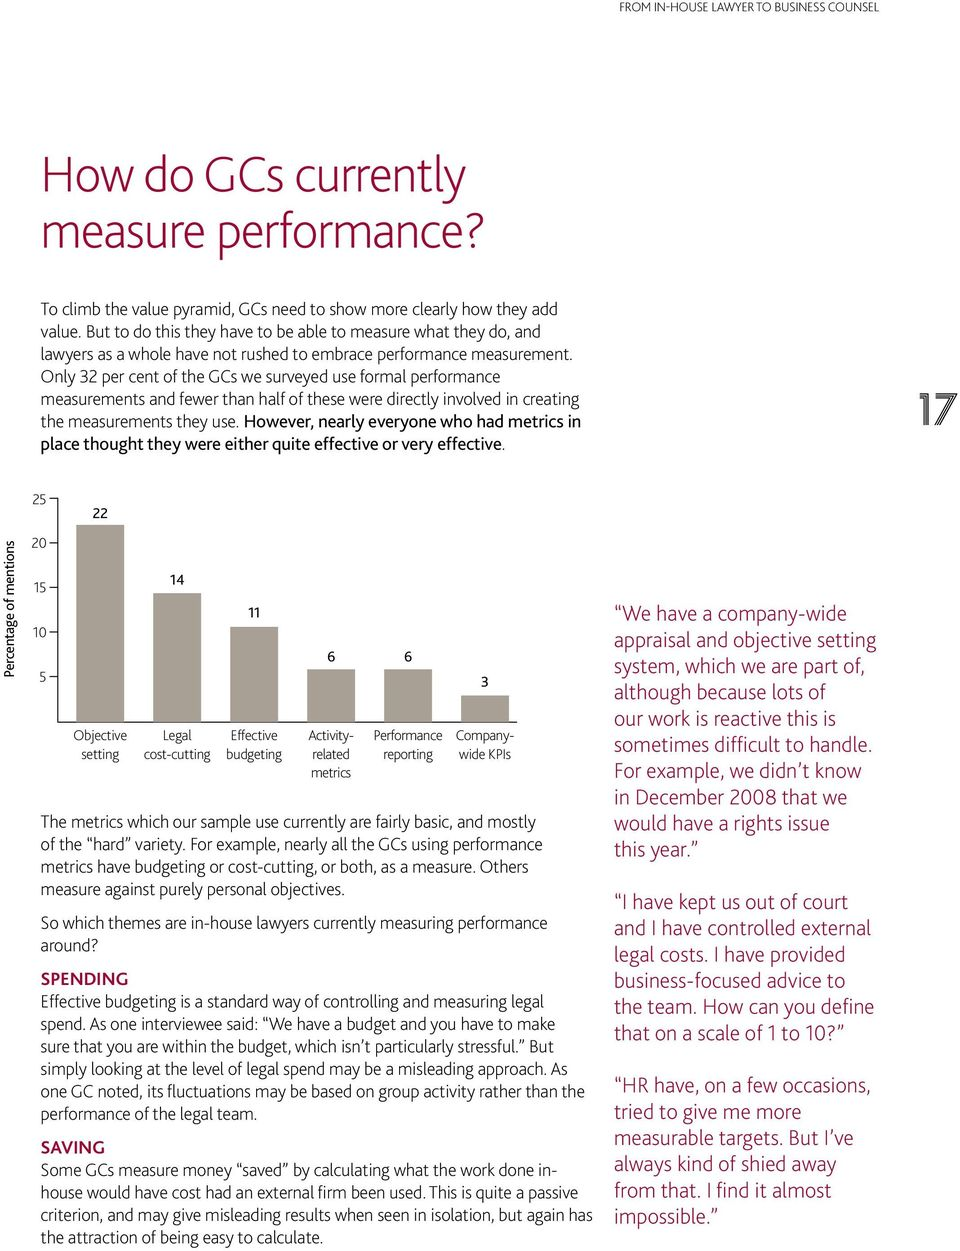 Only 32 per cent of the GCs we surveyed use formal performance measurements and fewer than half of these were directly involved in creating the measurements they use.